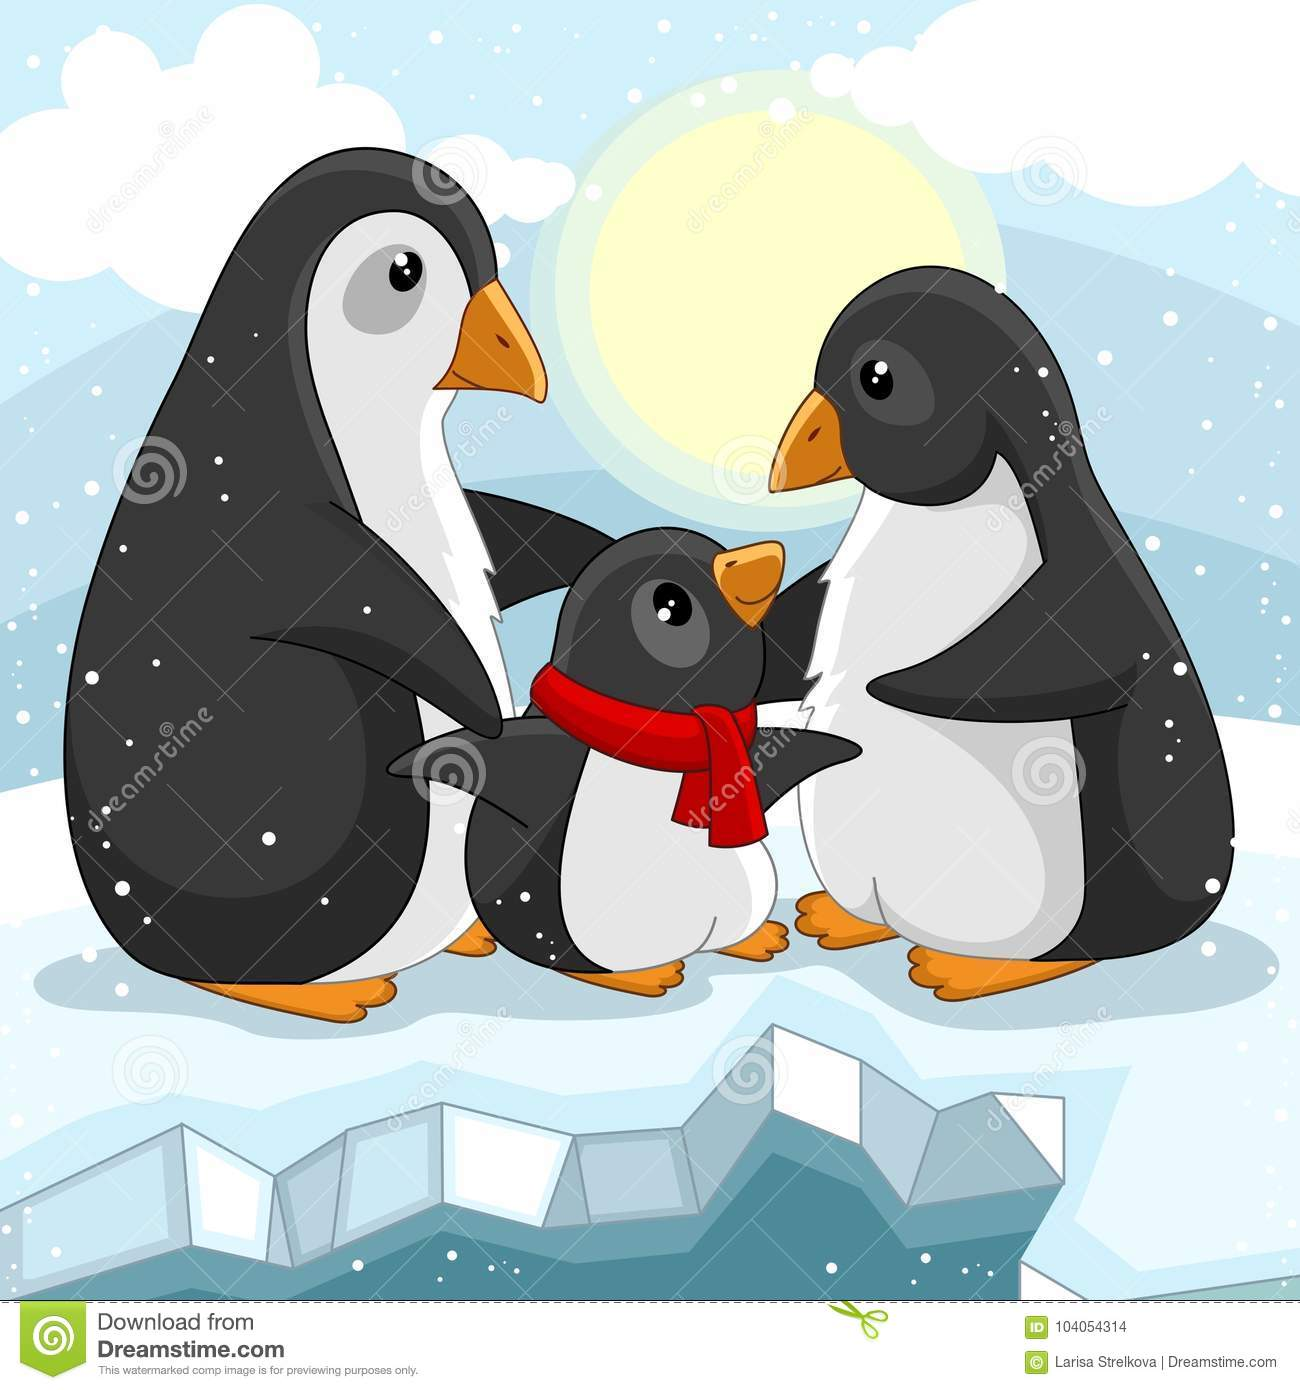 Love Each Other Cartoon: Family Of Penguins Stock Vector. Illustration Of Pole